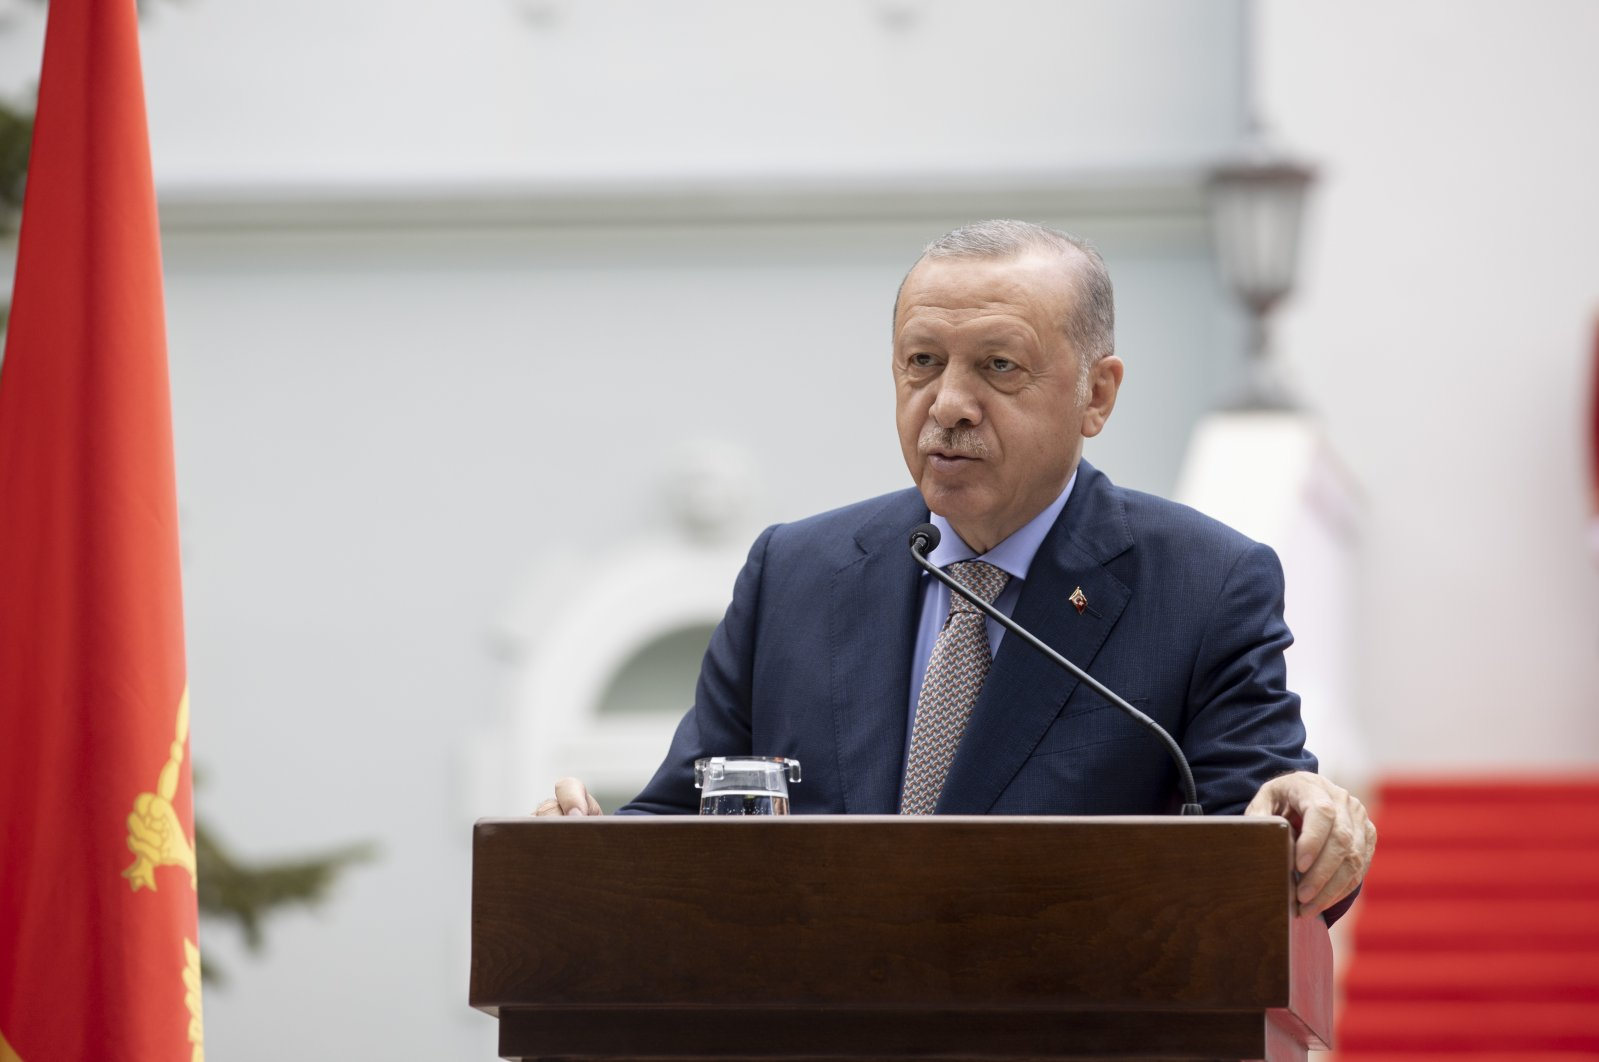 President Recep Tayyip Erdoğan speaking at a joint press conference with Montenegro's President Milo Cukanovic, Montenegro, Aug. 28, 2021 (AA Photo)